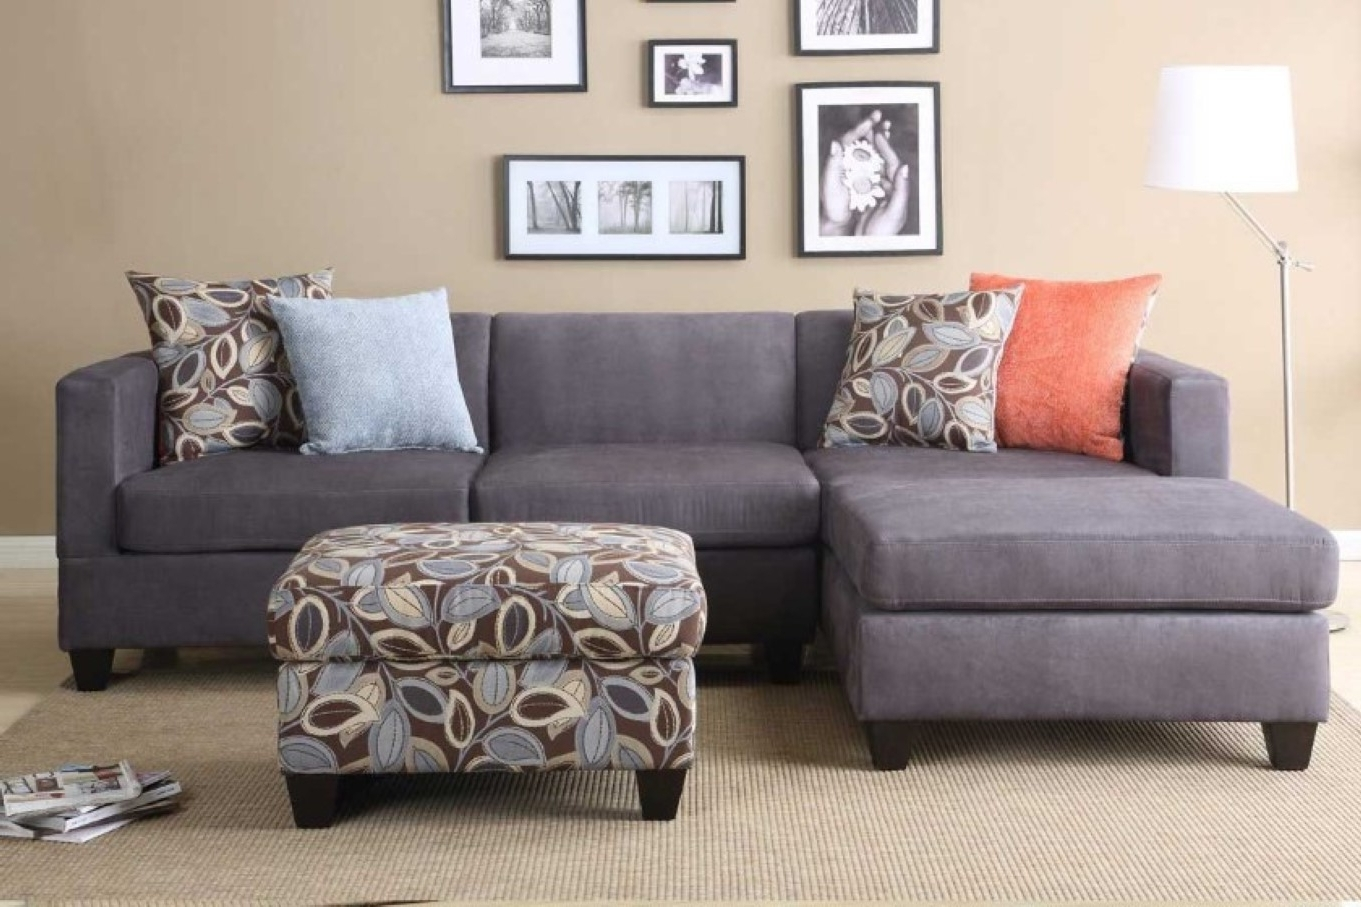 Incredible Microfiber Sleeper Sofa Top Home Design Ideas With Grey Regarding Most Up To Date 3 Piece Sectional Sleeper Sofas (Gallery 6 of 20)